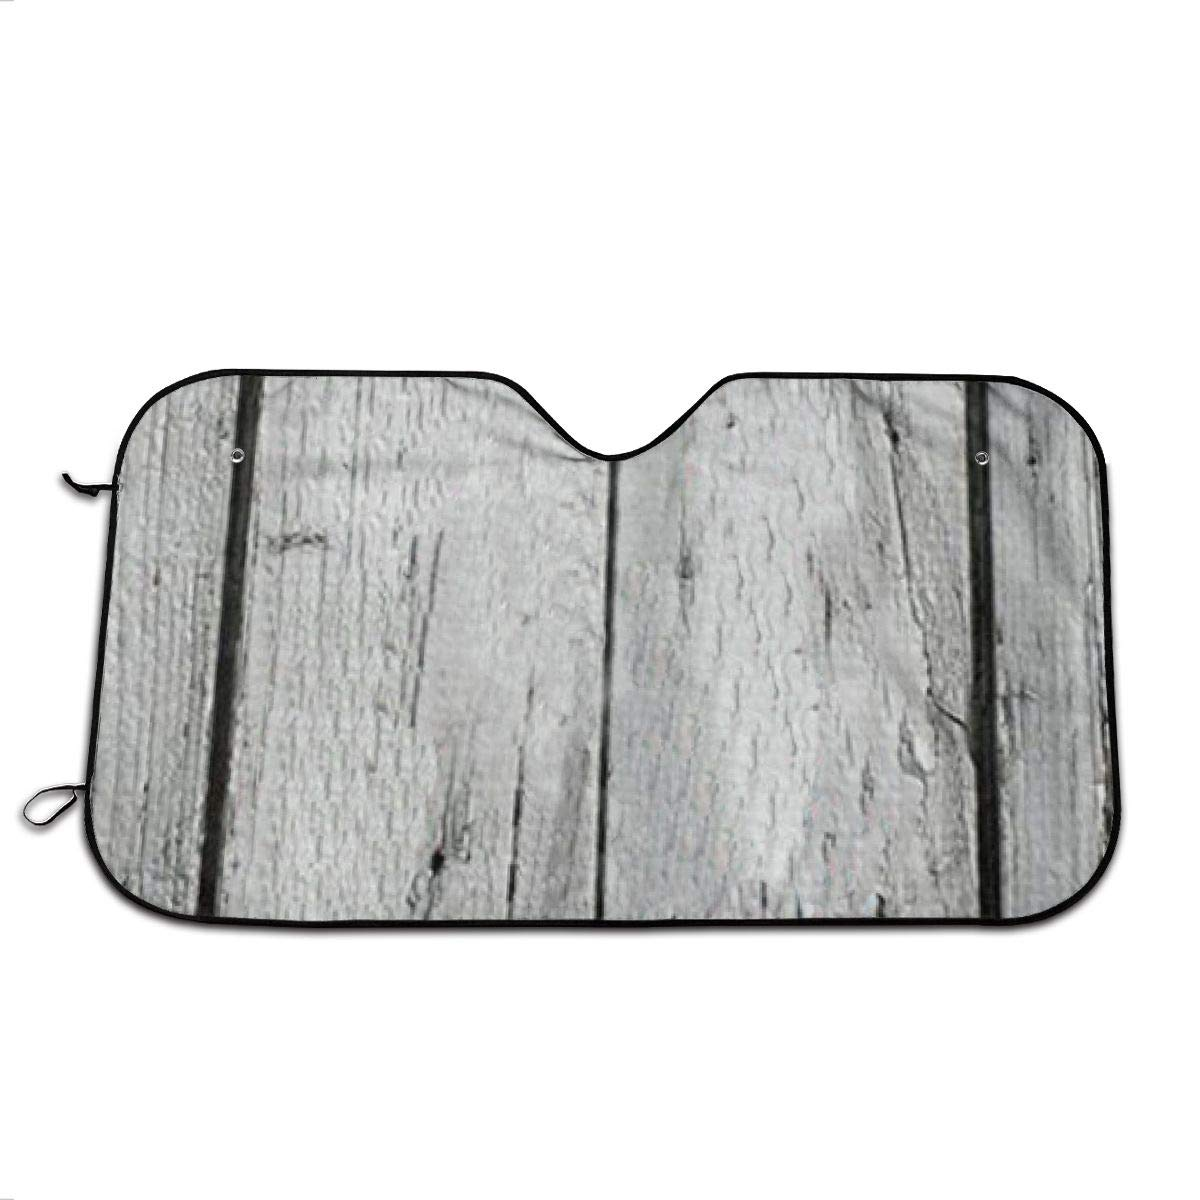 Windshield Car Truck SUV Sunshade Fit Special price 1 year warranty Pl 58